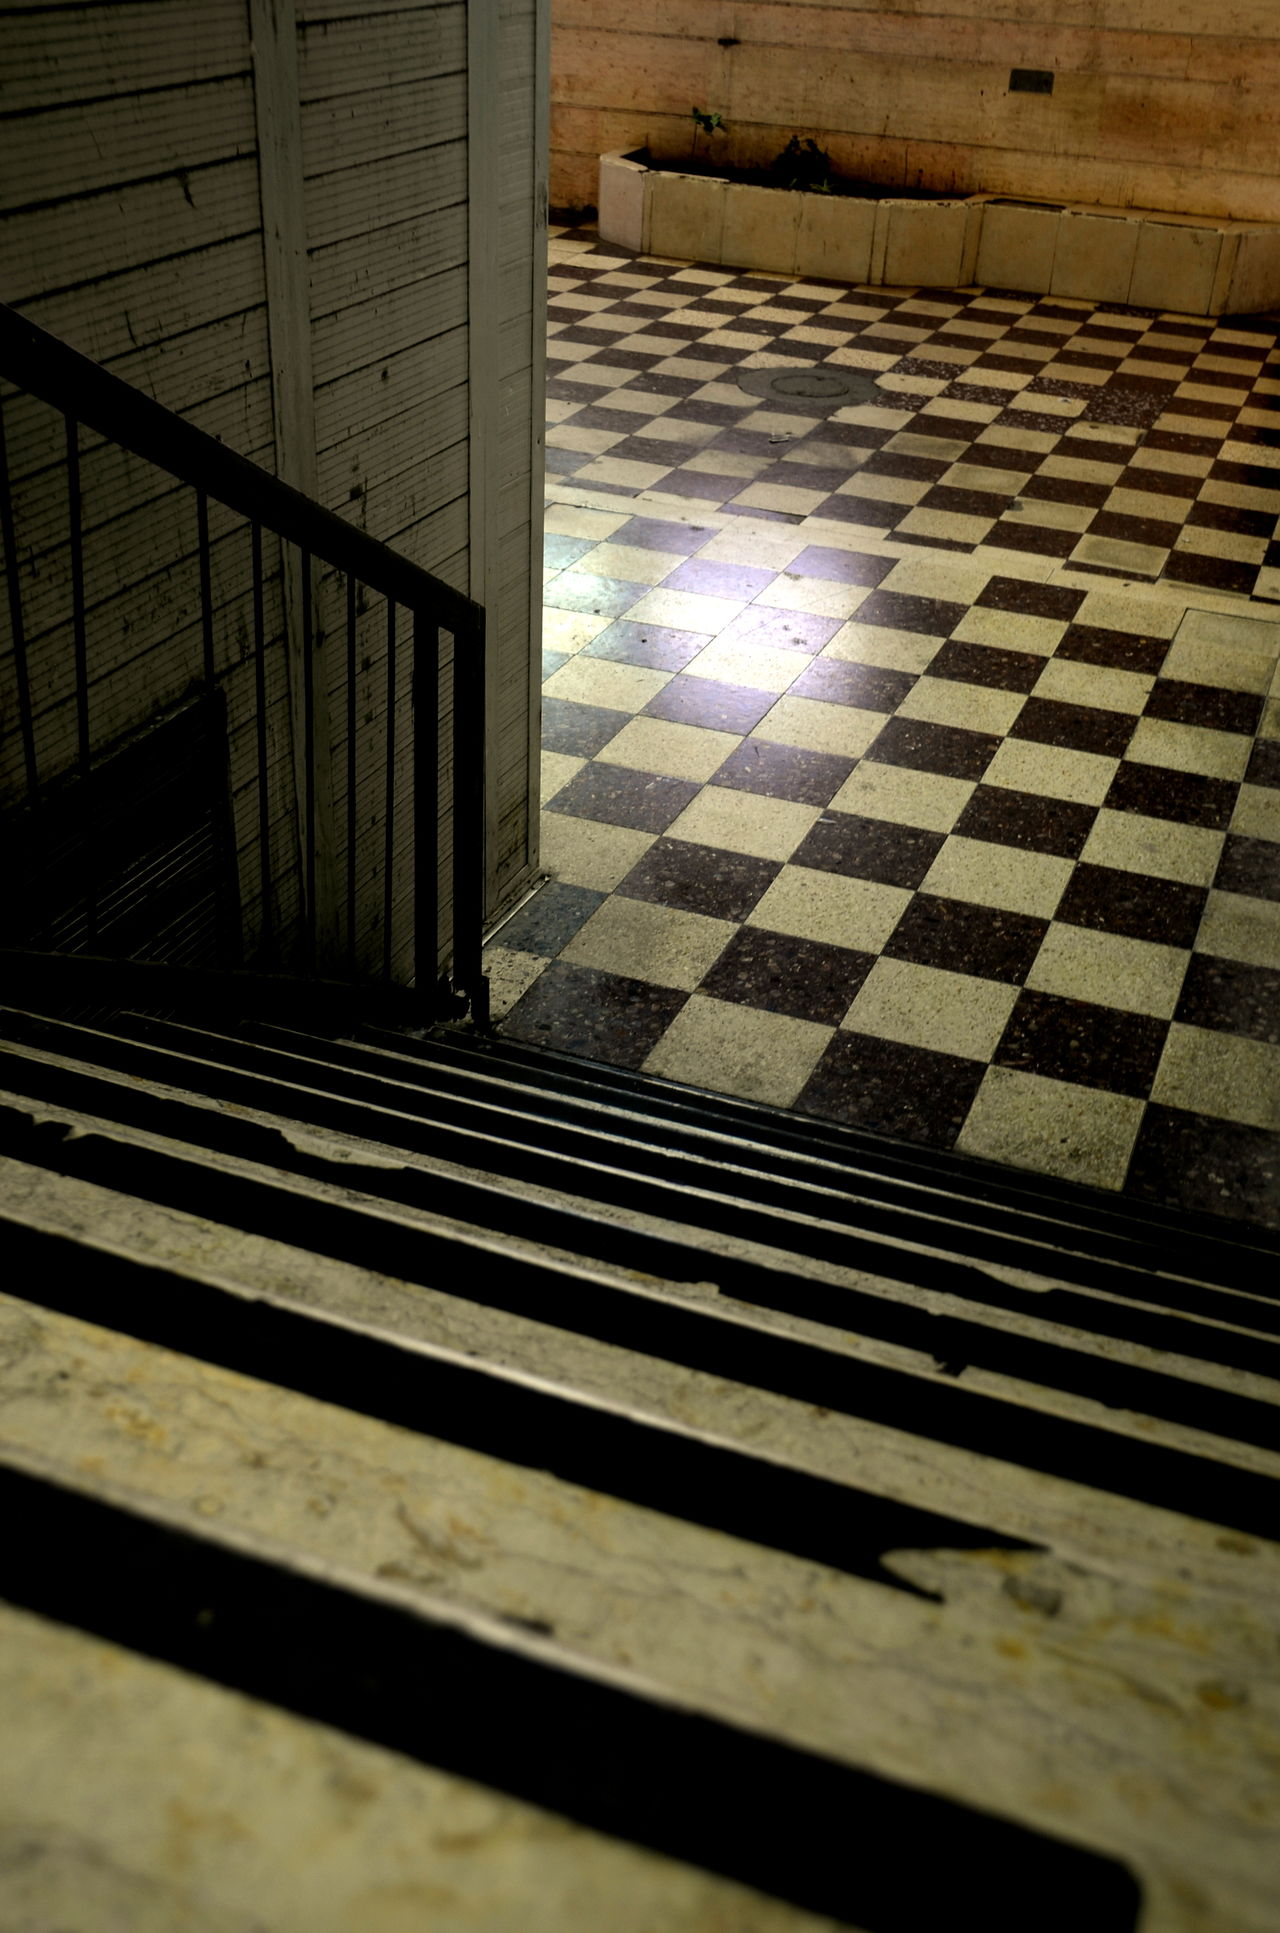 Chessboard Chessboard Pattern Empty Entrance Floor Patterns Flooring Interior Design No People Stairs